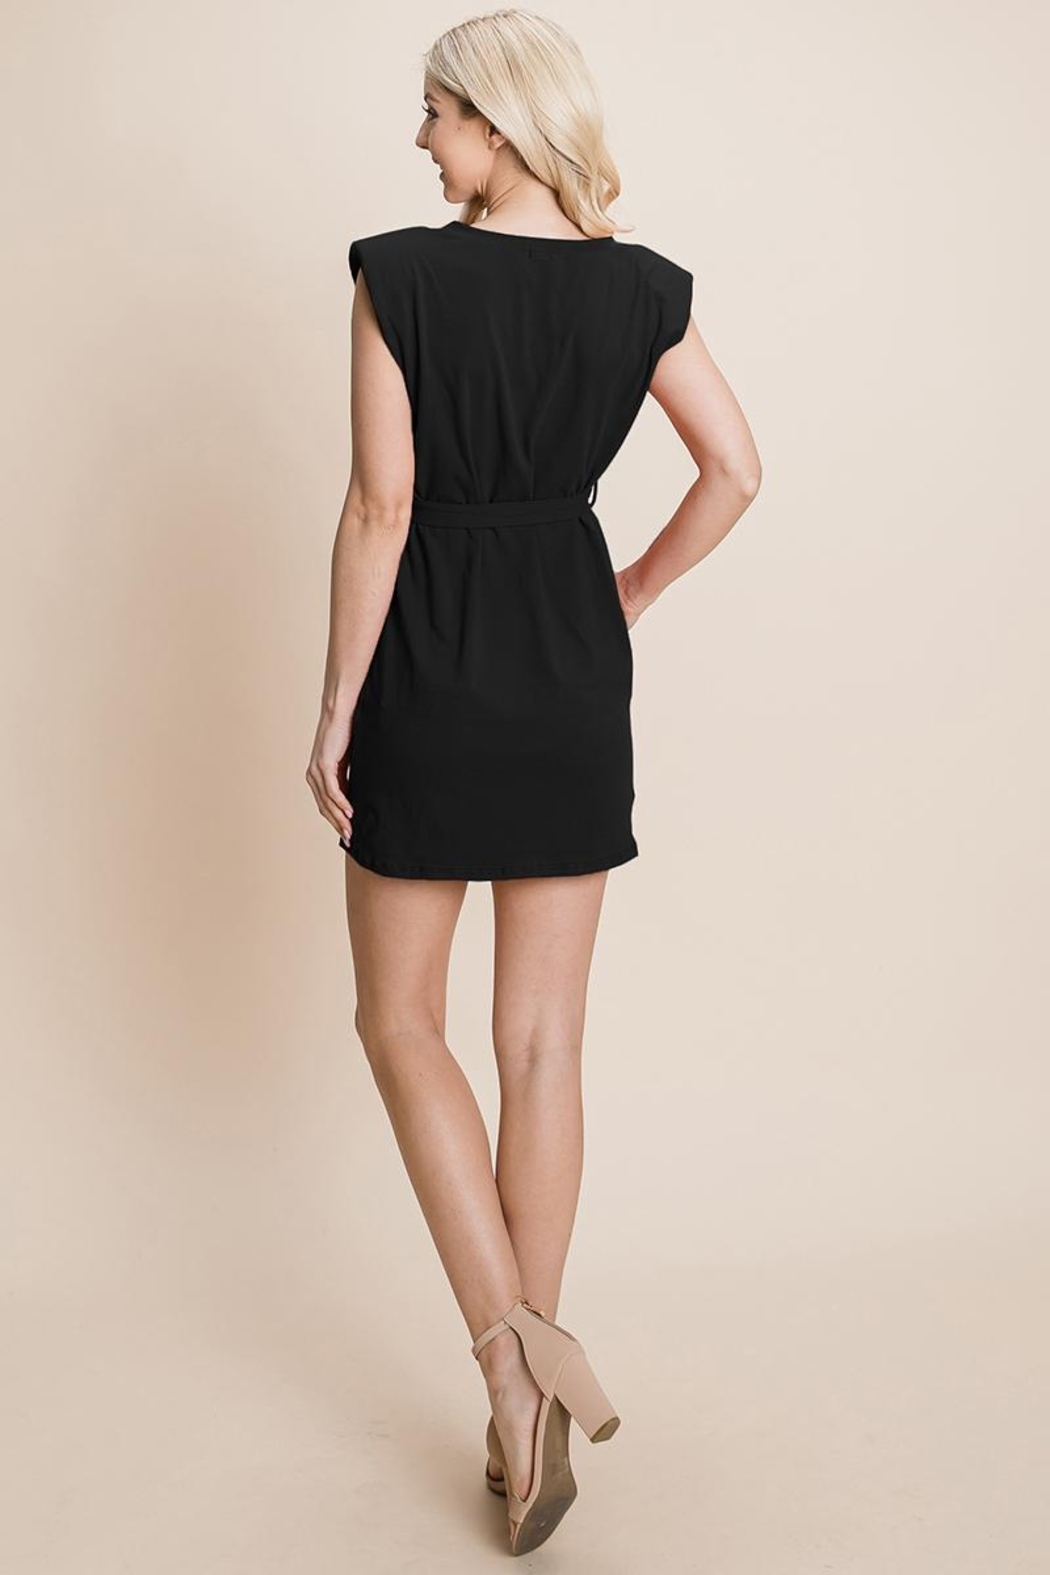 RolyPoly Casual Shoulder Pad Sleeveless Mini Belted Dress - Side Cropped Image